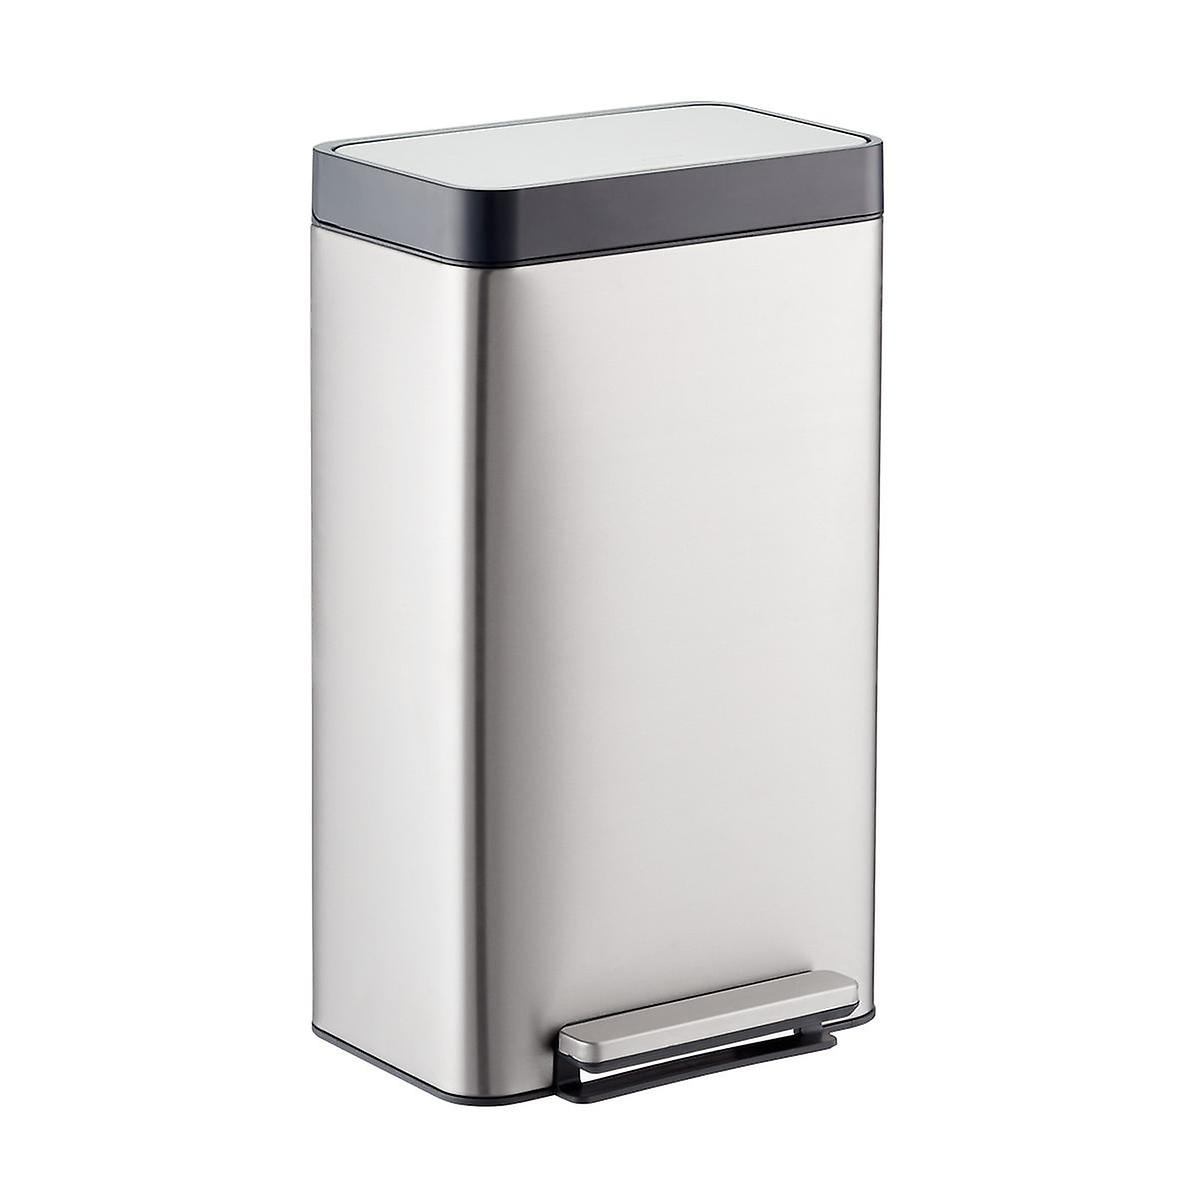 Kohler Stainless Steel 8 Gal Loft Step Trash Can